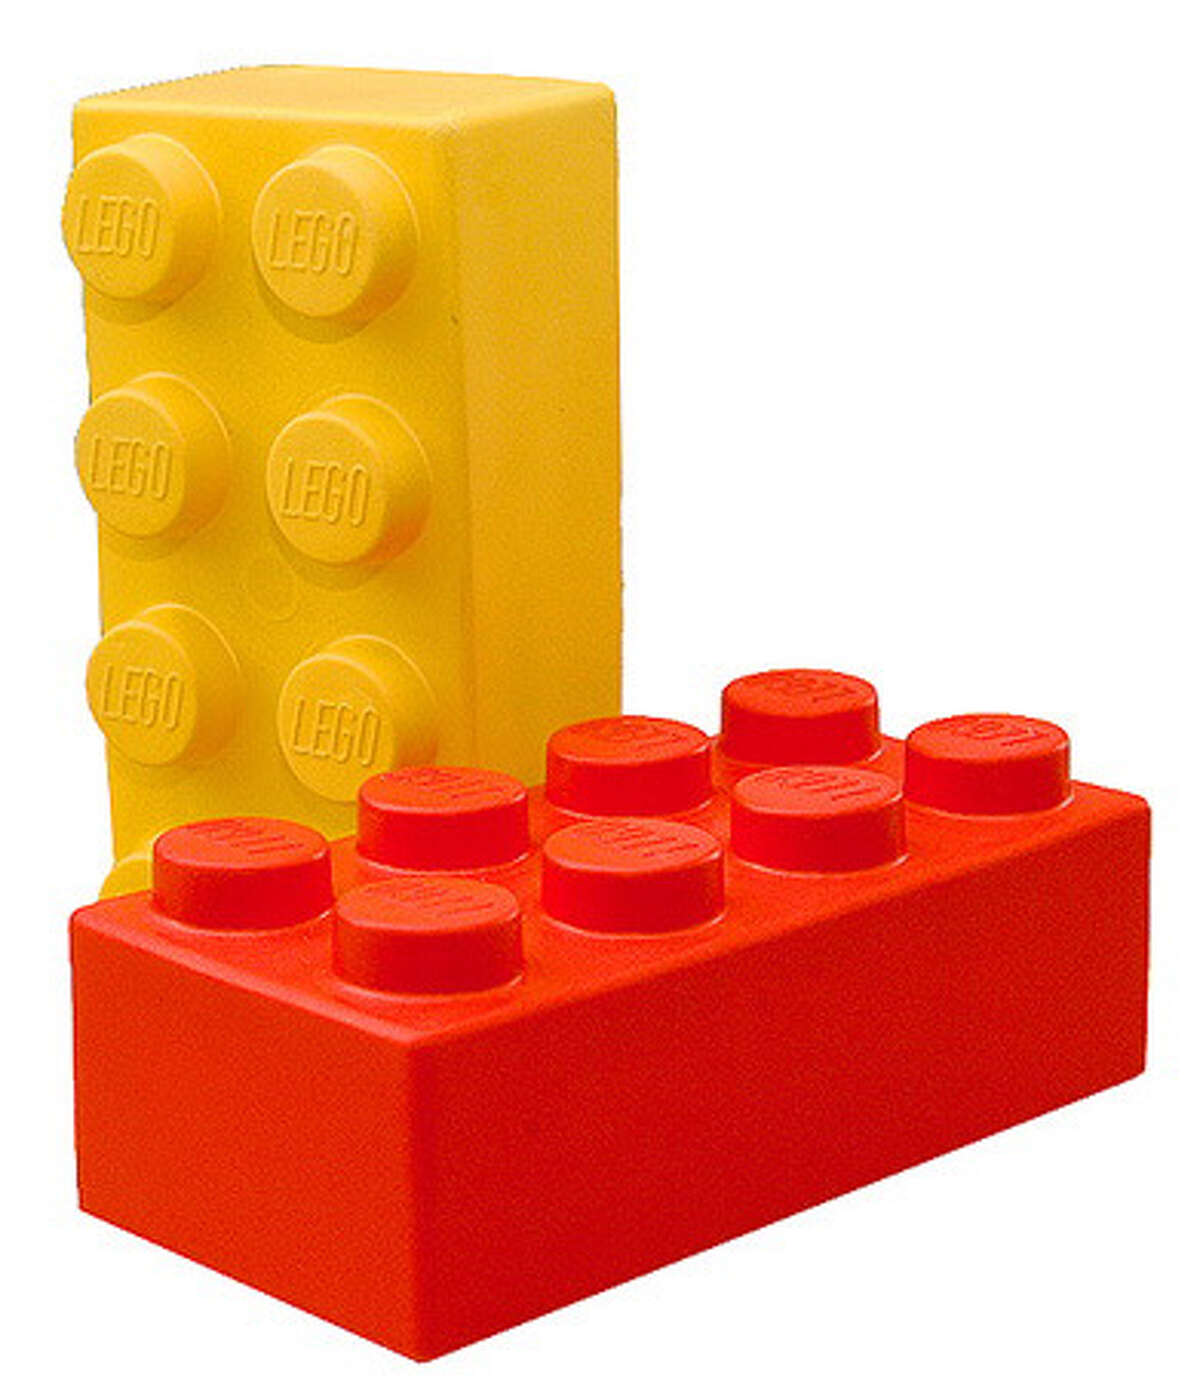 Legos are more fun to build with than to step on.